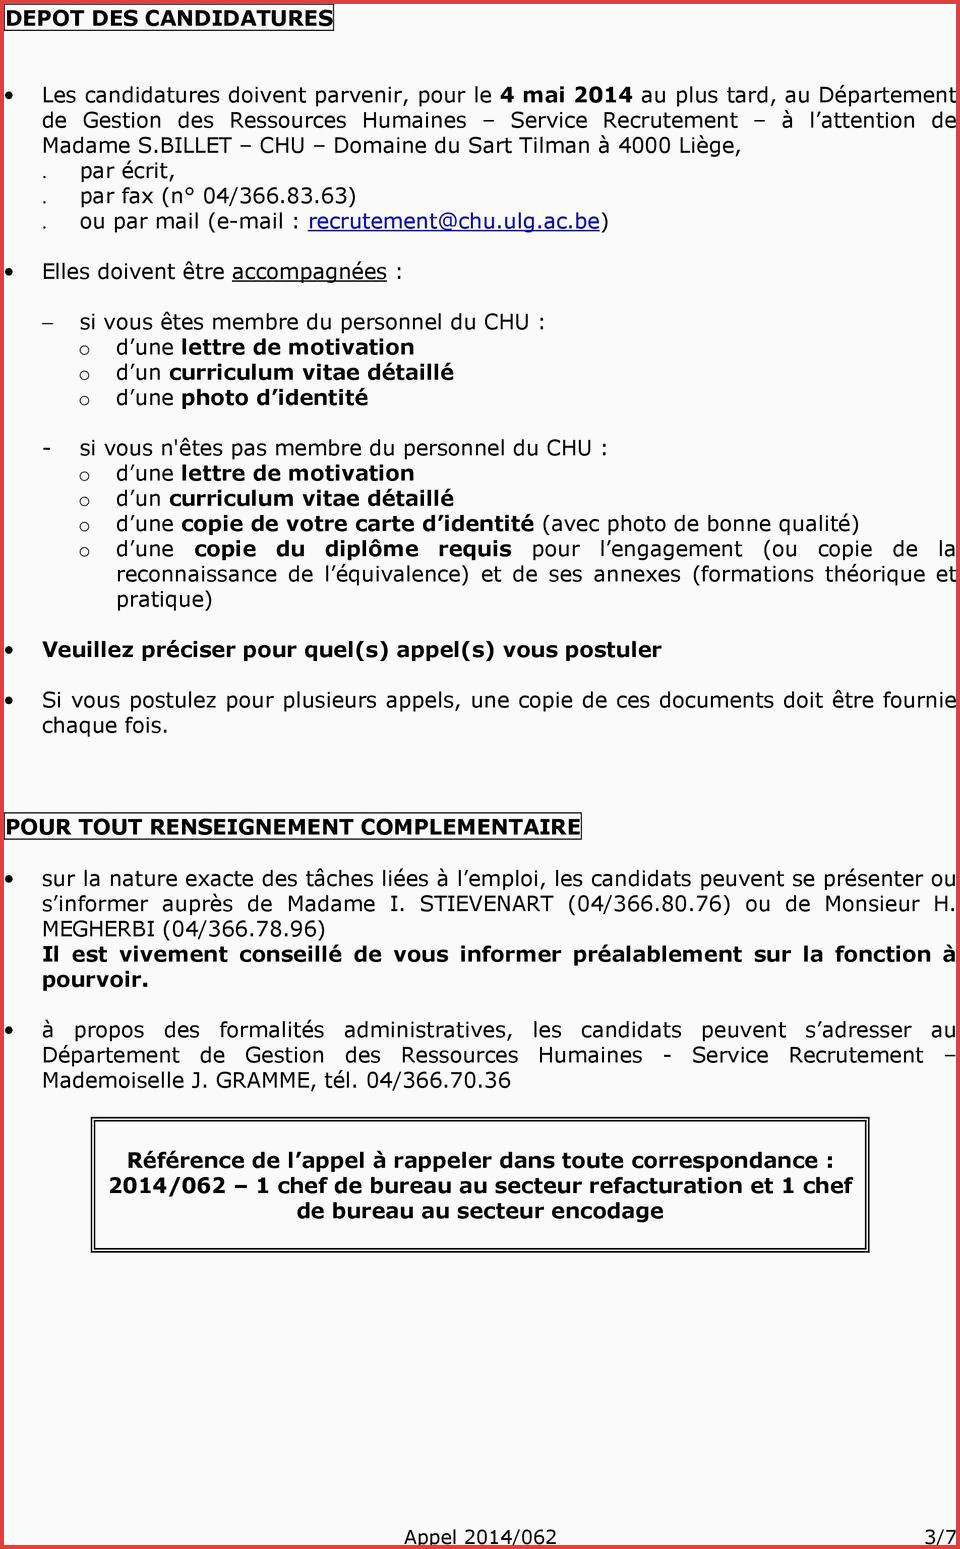 Lettre De Motivation Master Rh Exemple Lettre De Motivation assistant Rh Alternance Lettre De